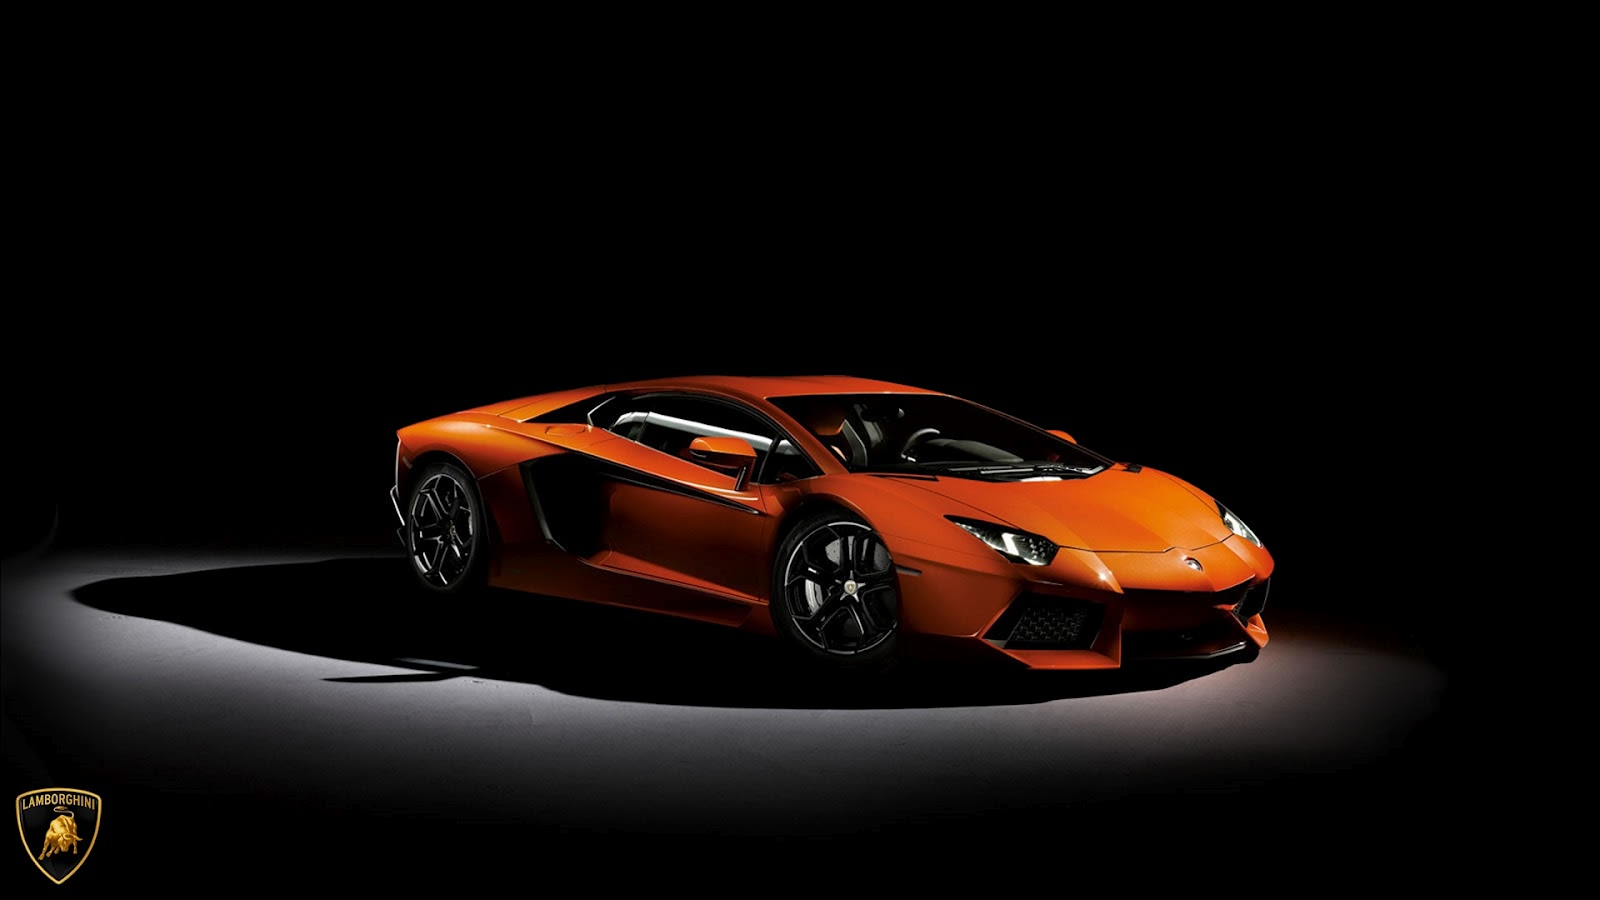 Freaking Spot Lamborghini Full HD 1080p Wallpapers 1600x900